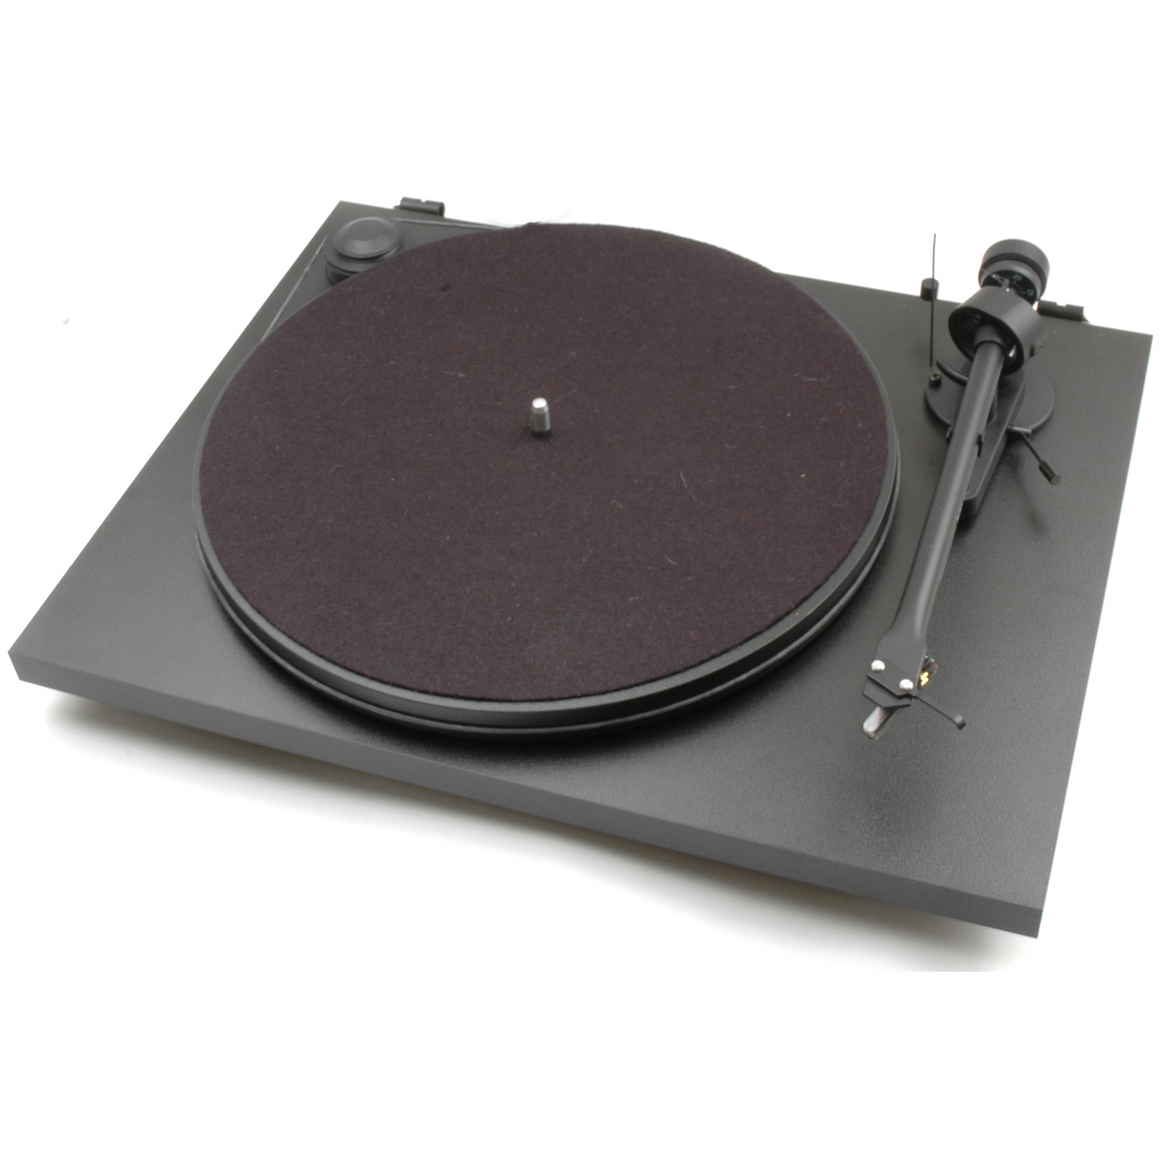 Pro-Ject Audio Essential II Turntable Ex-Display